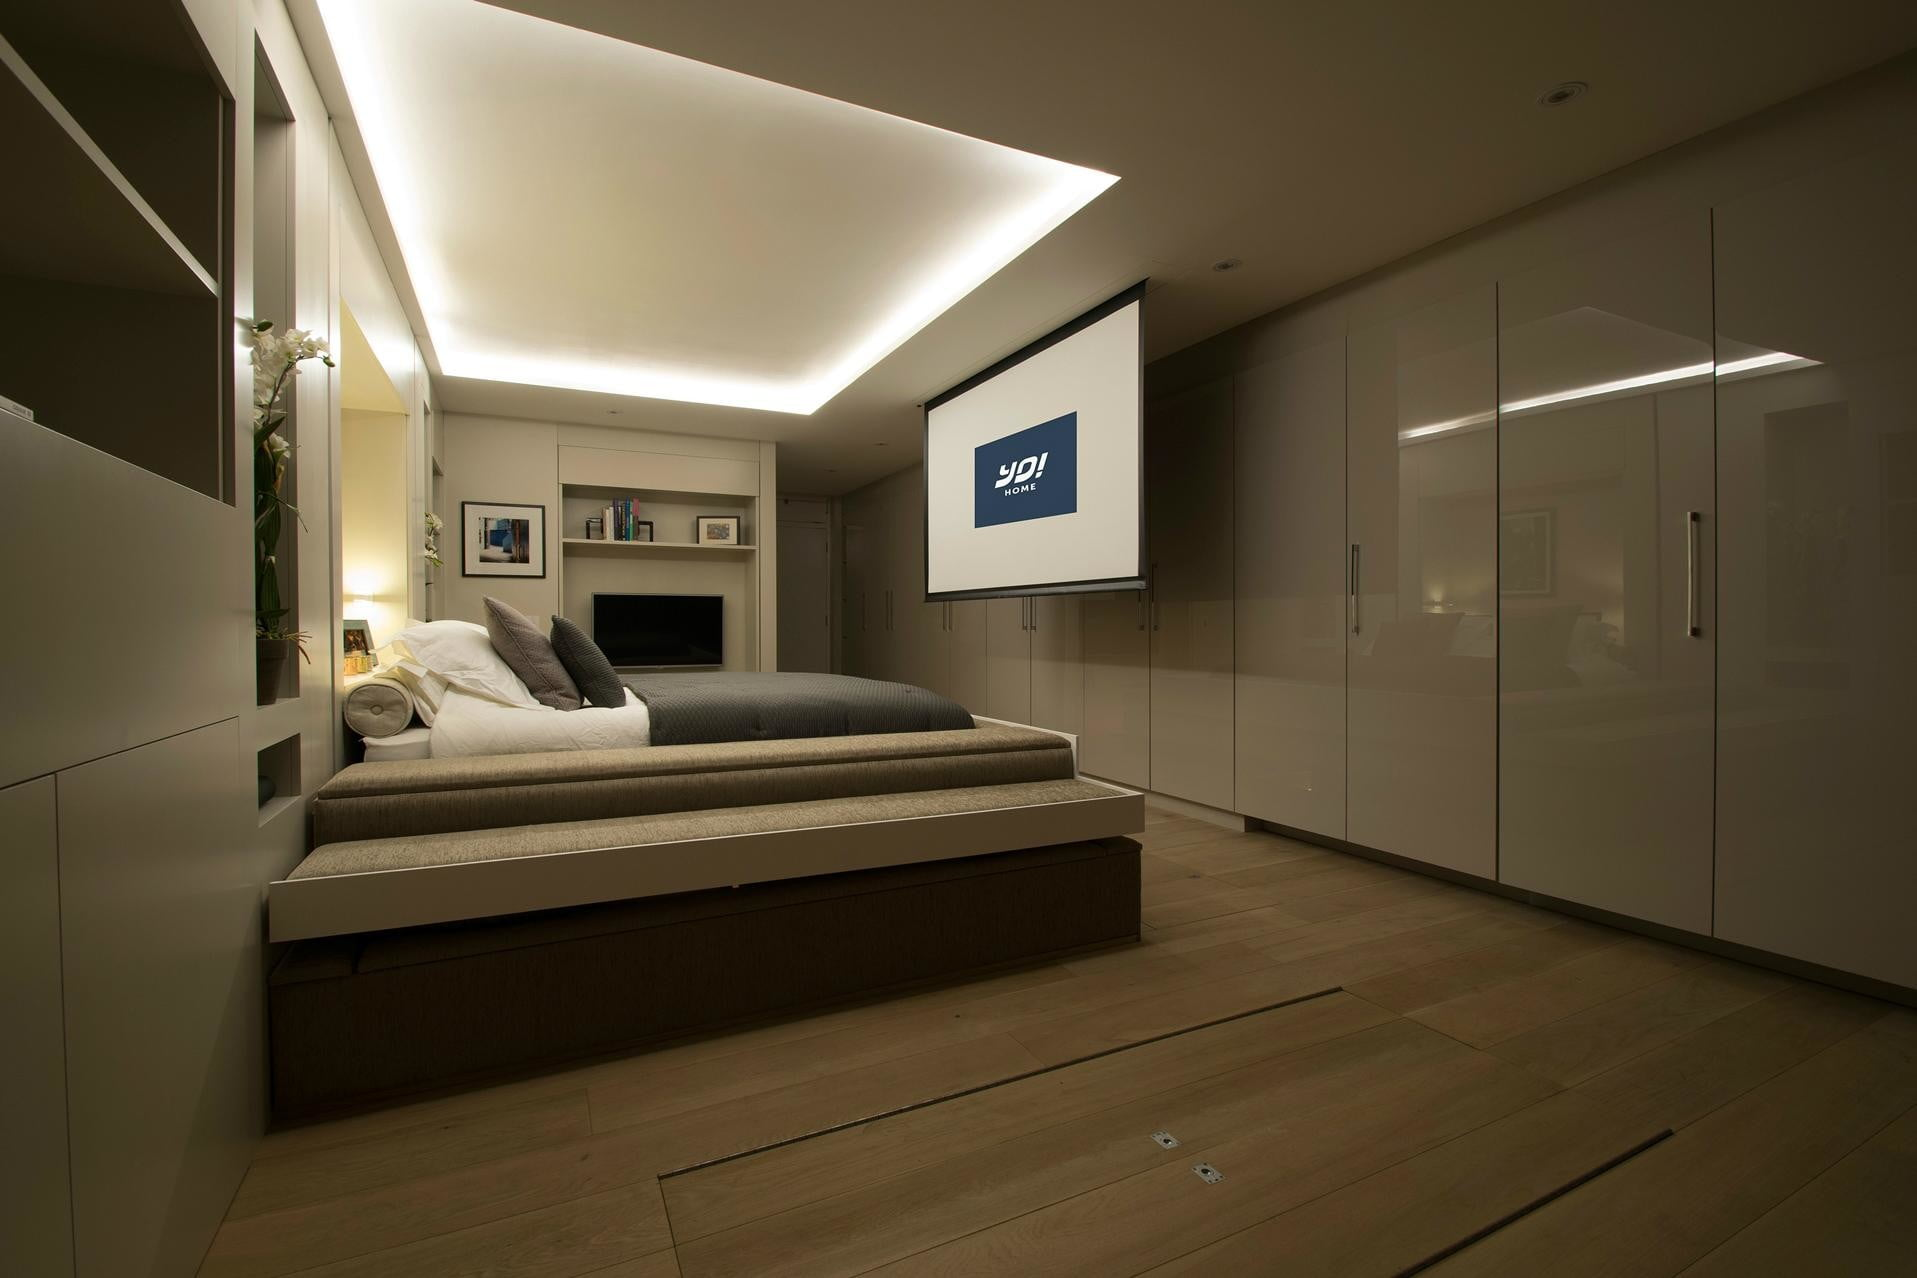 the yo home apartment has a bed that raises to ceiling transformable bedroom